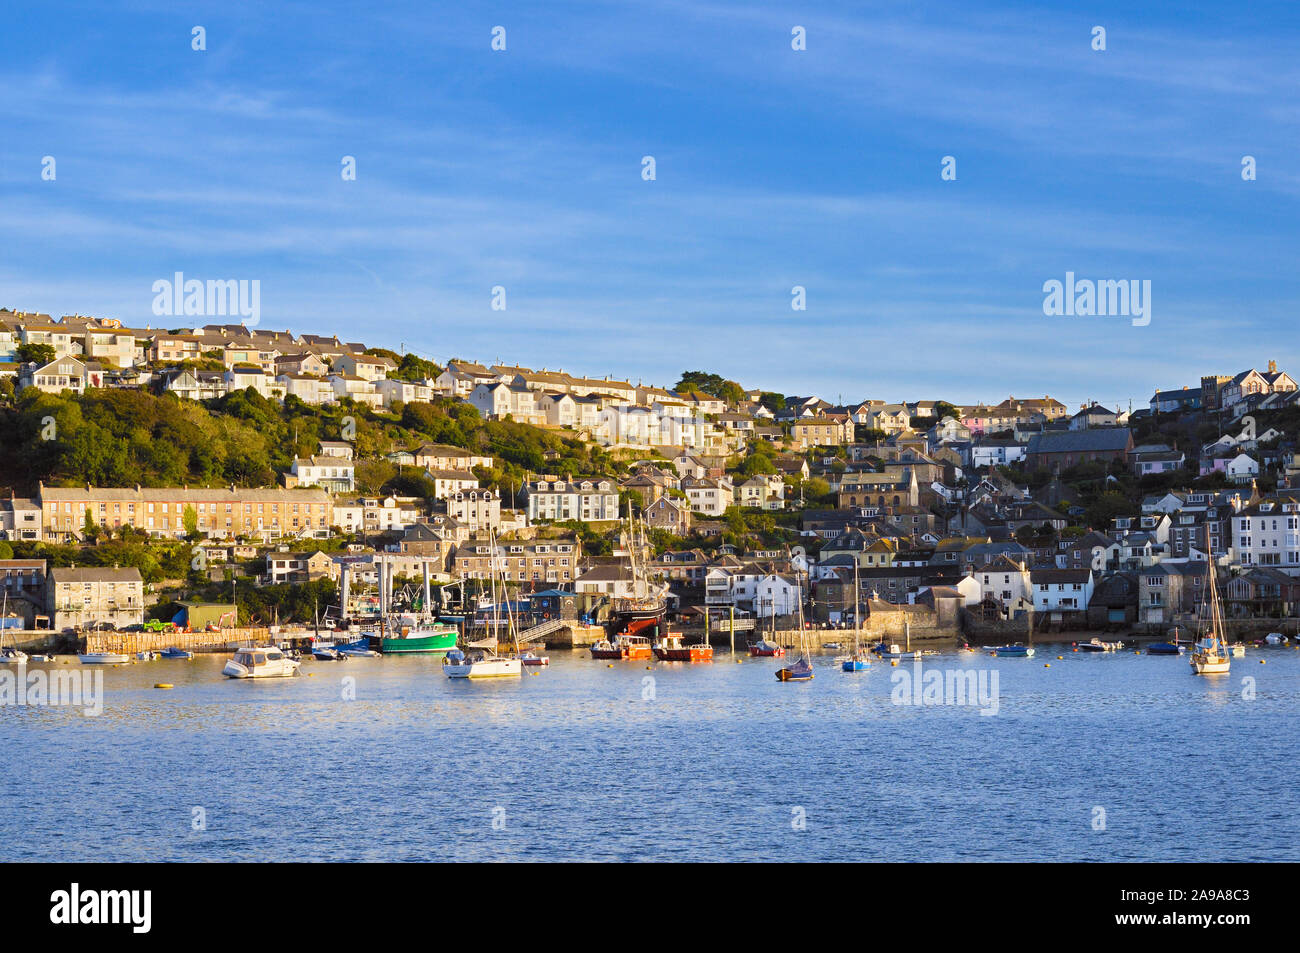 The Cornish fishing village of Polruan viewed from across the river in Fowey, Cornwall, England, UK Stock Photo